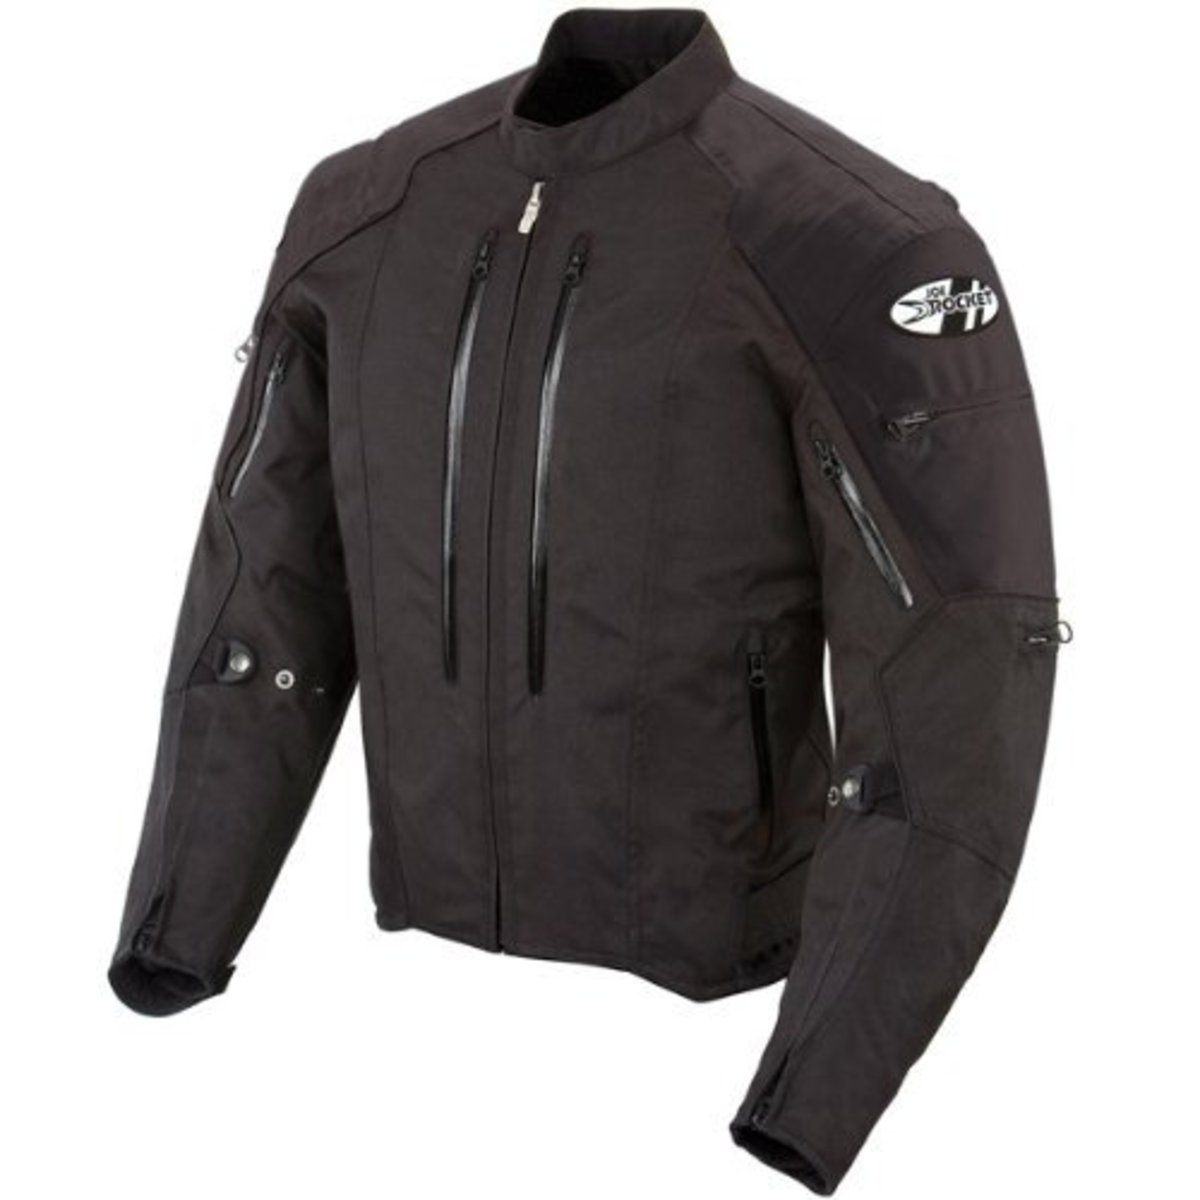 Cheap and BestMotorcycle Jackets For Men - Buying Guide Review